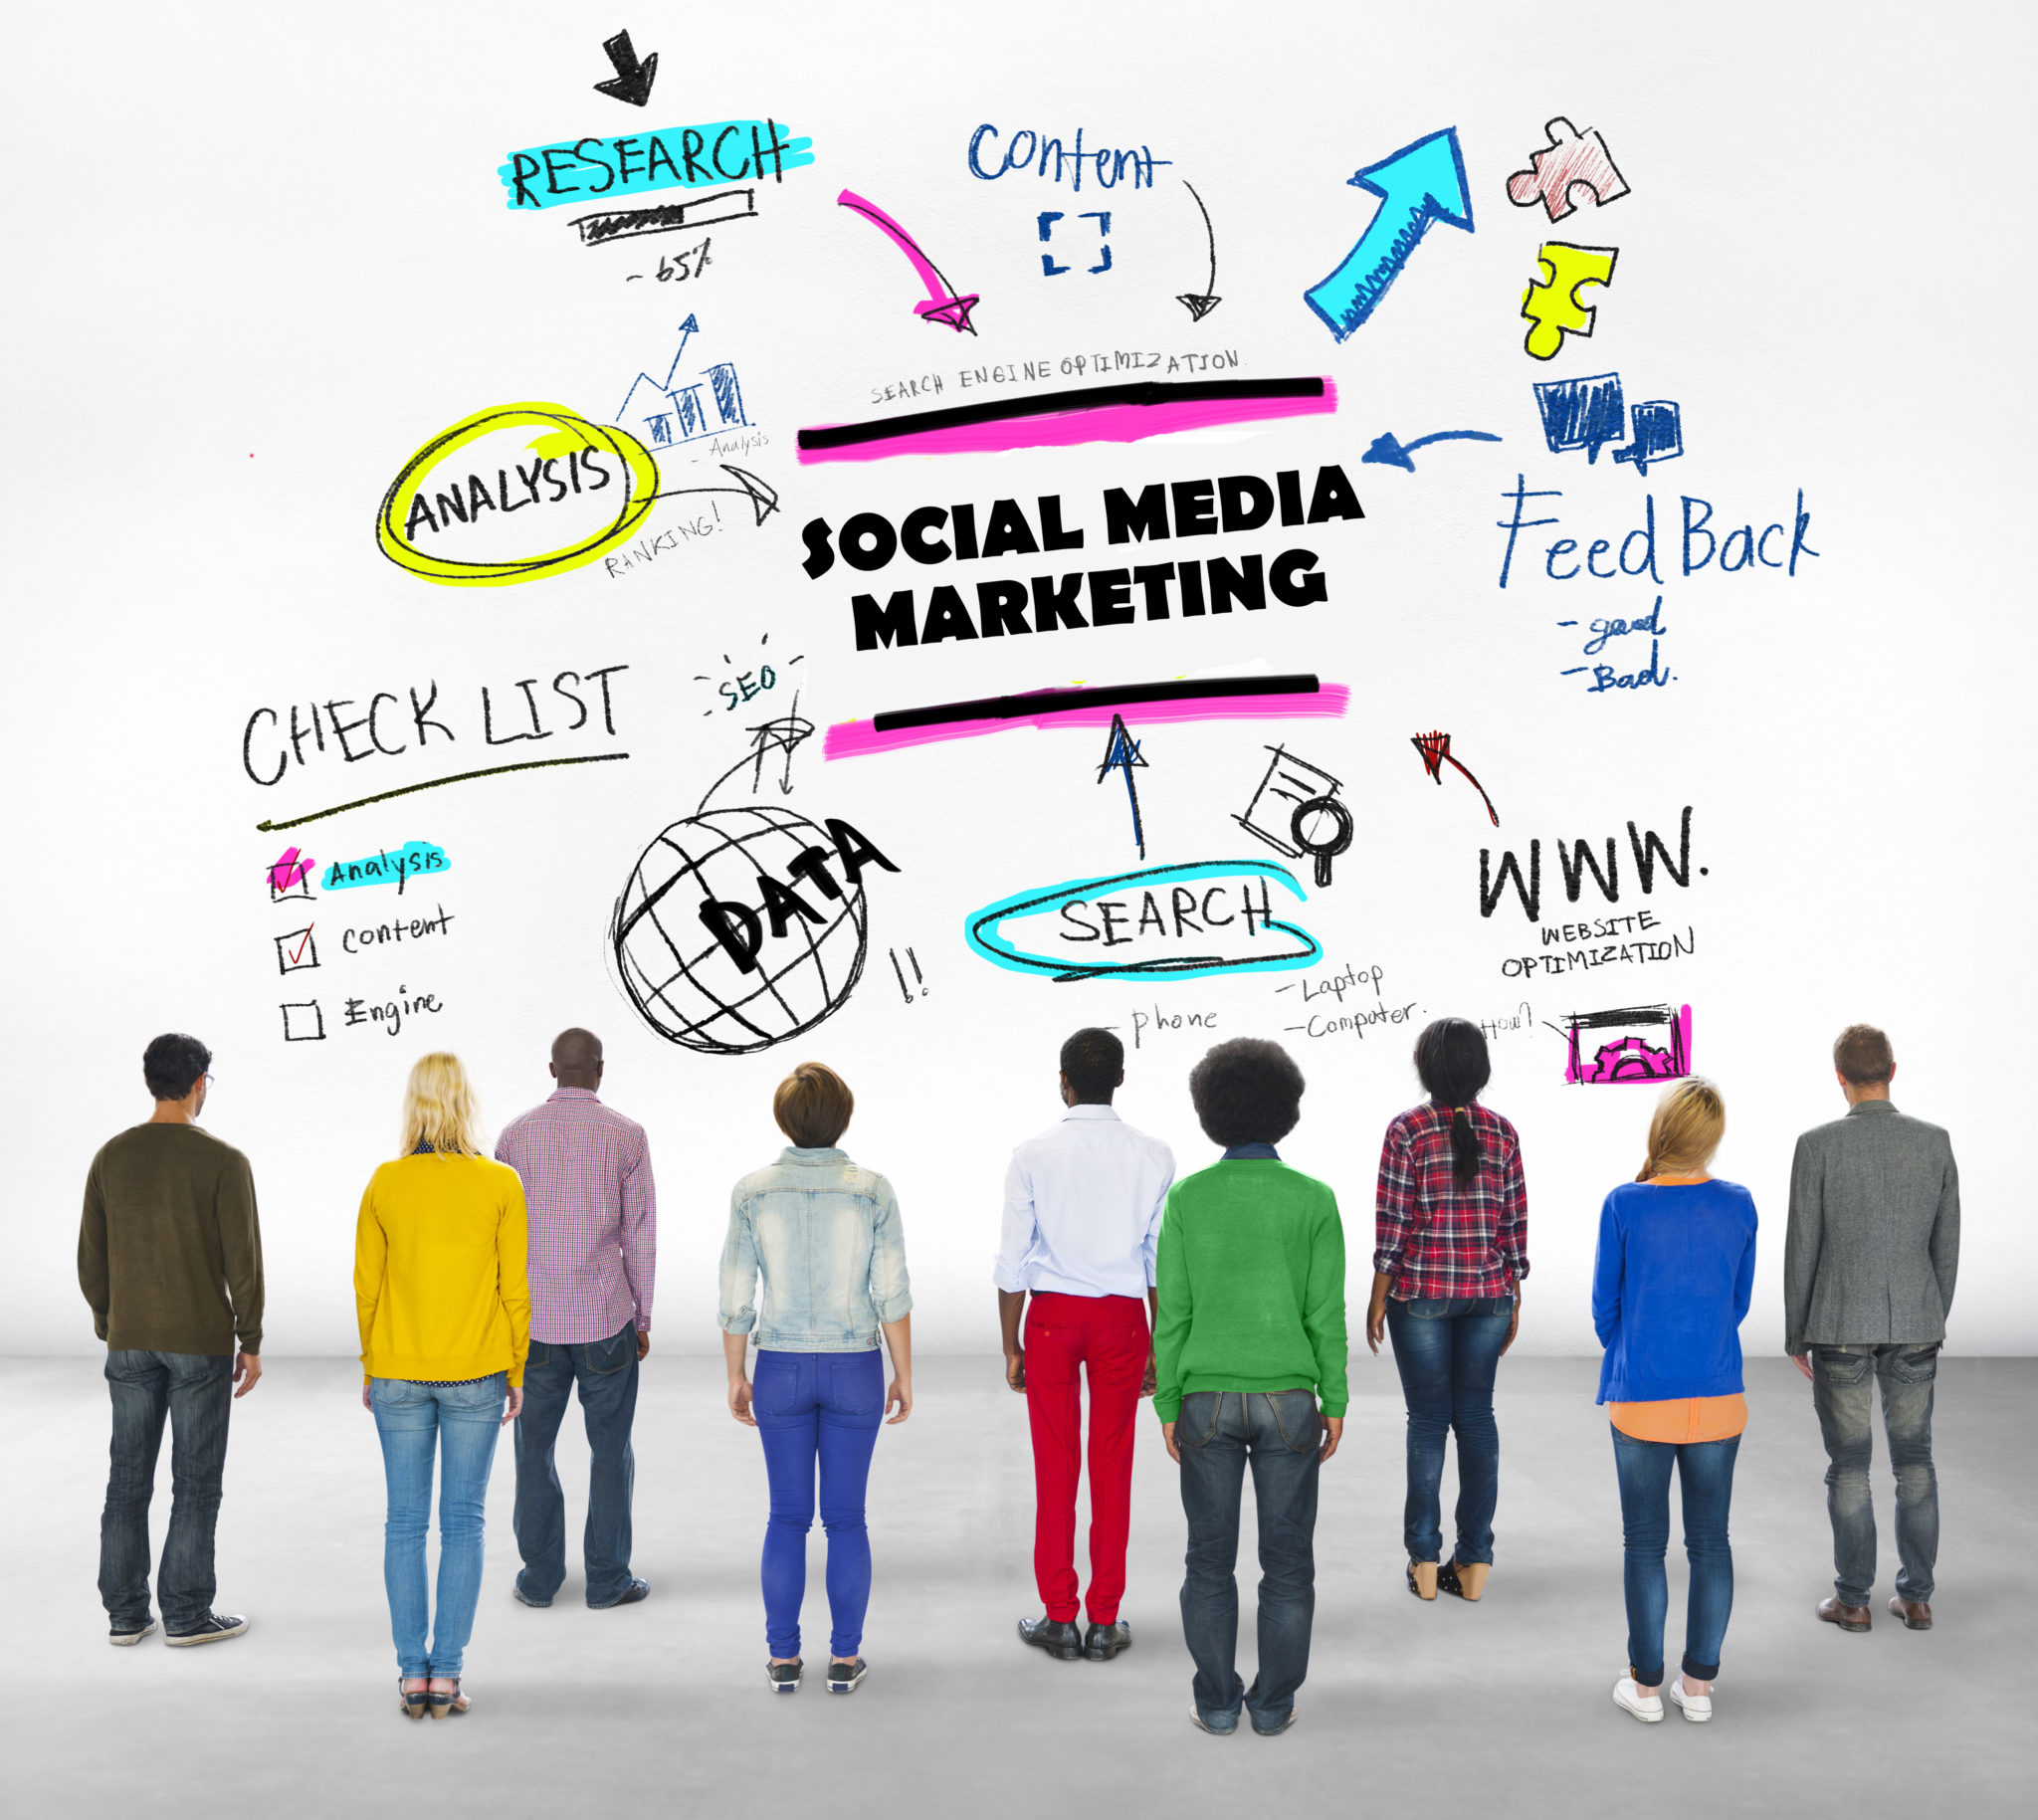 Social Media Marketing in 2016: How to Get a Head Start